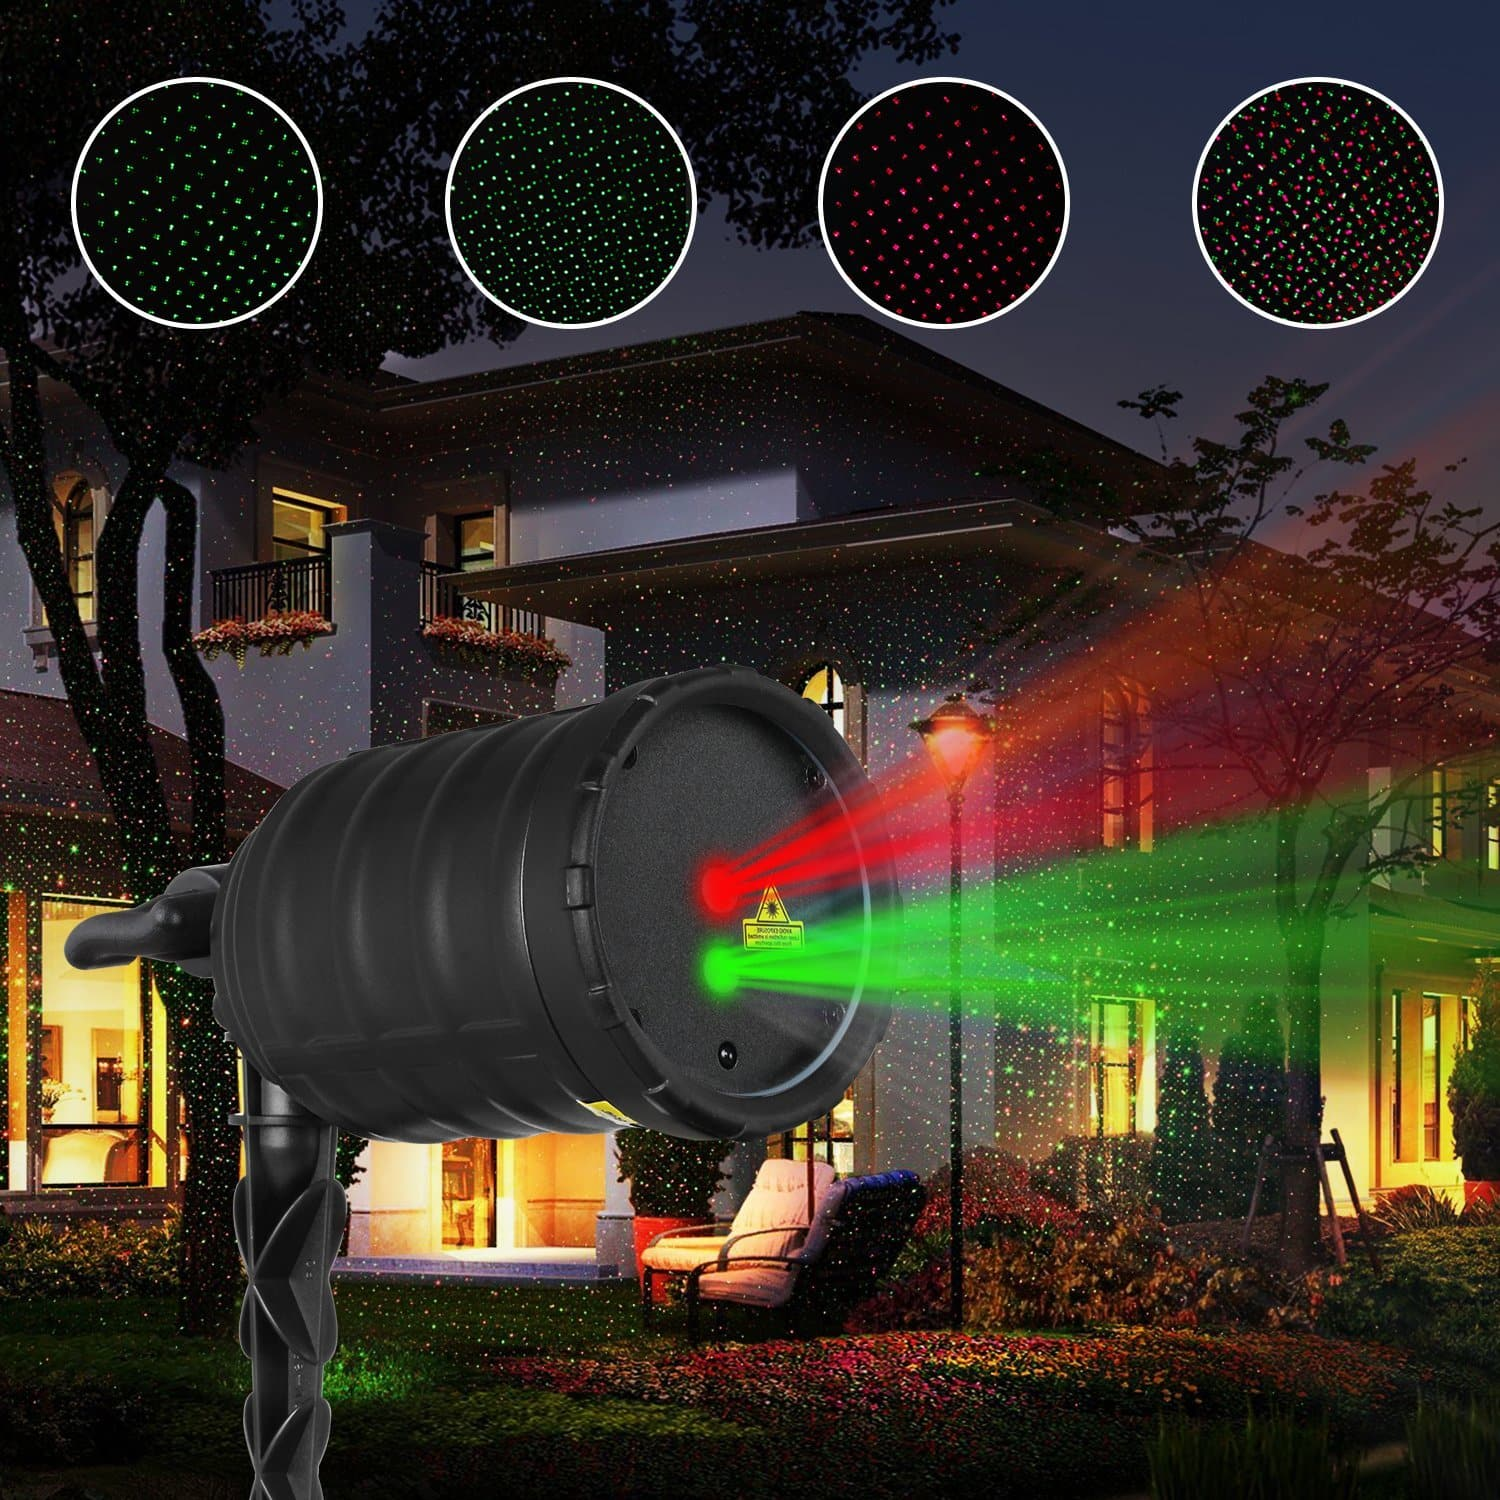 Christmas Laser Projector Lights $22 + Free Shipping